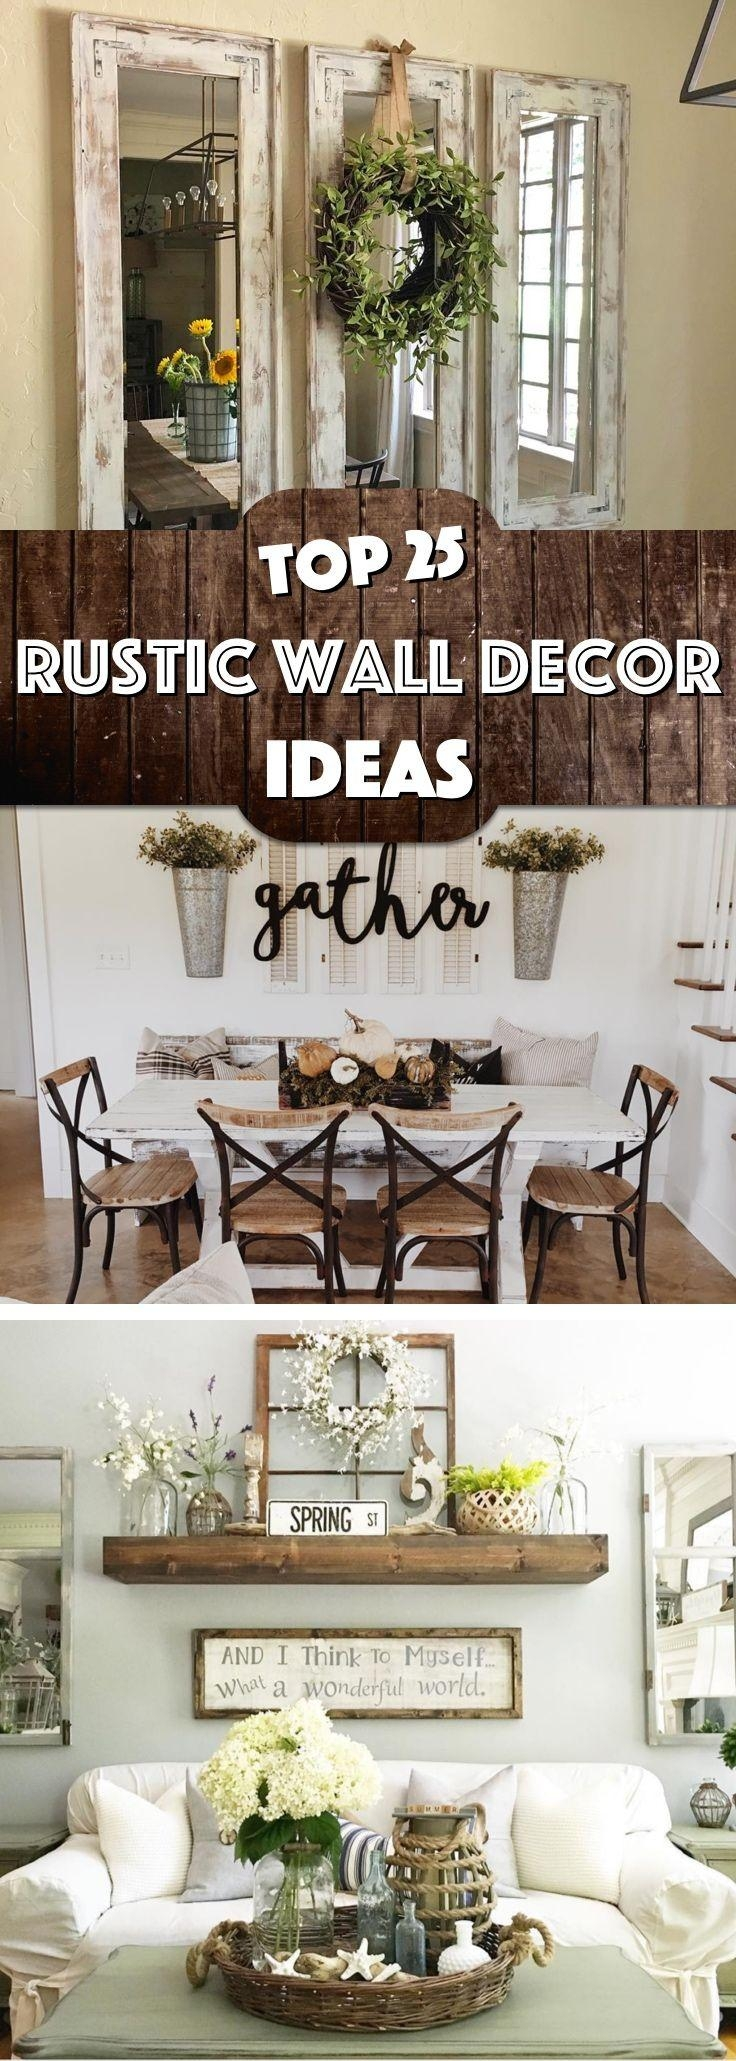 Best 25+ Rustic Wall Art Ideas Only On Pinterest | Rustic Wall Throughout Farmhouse Wall Art (View 16 of 20)